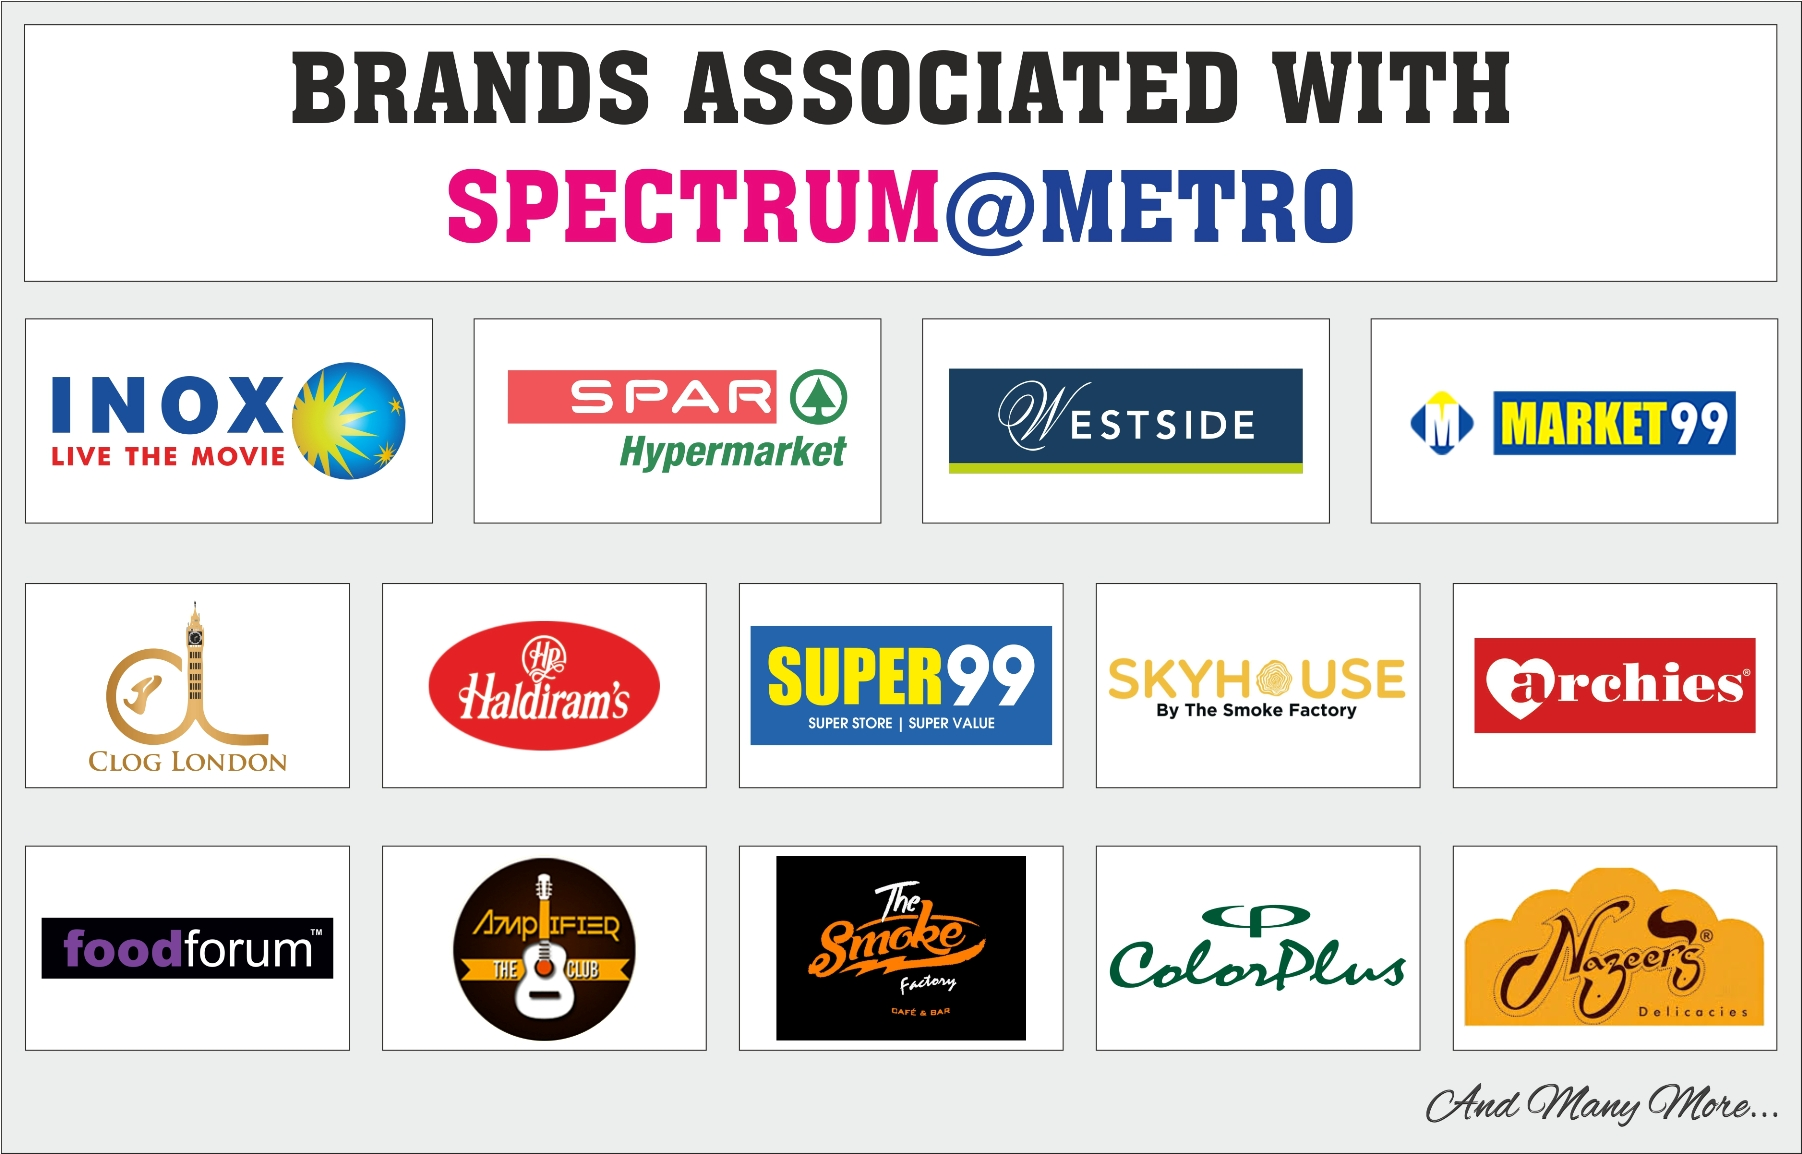 multi-brand retail experience at Spectrum@Metro